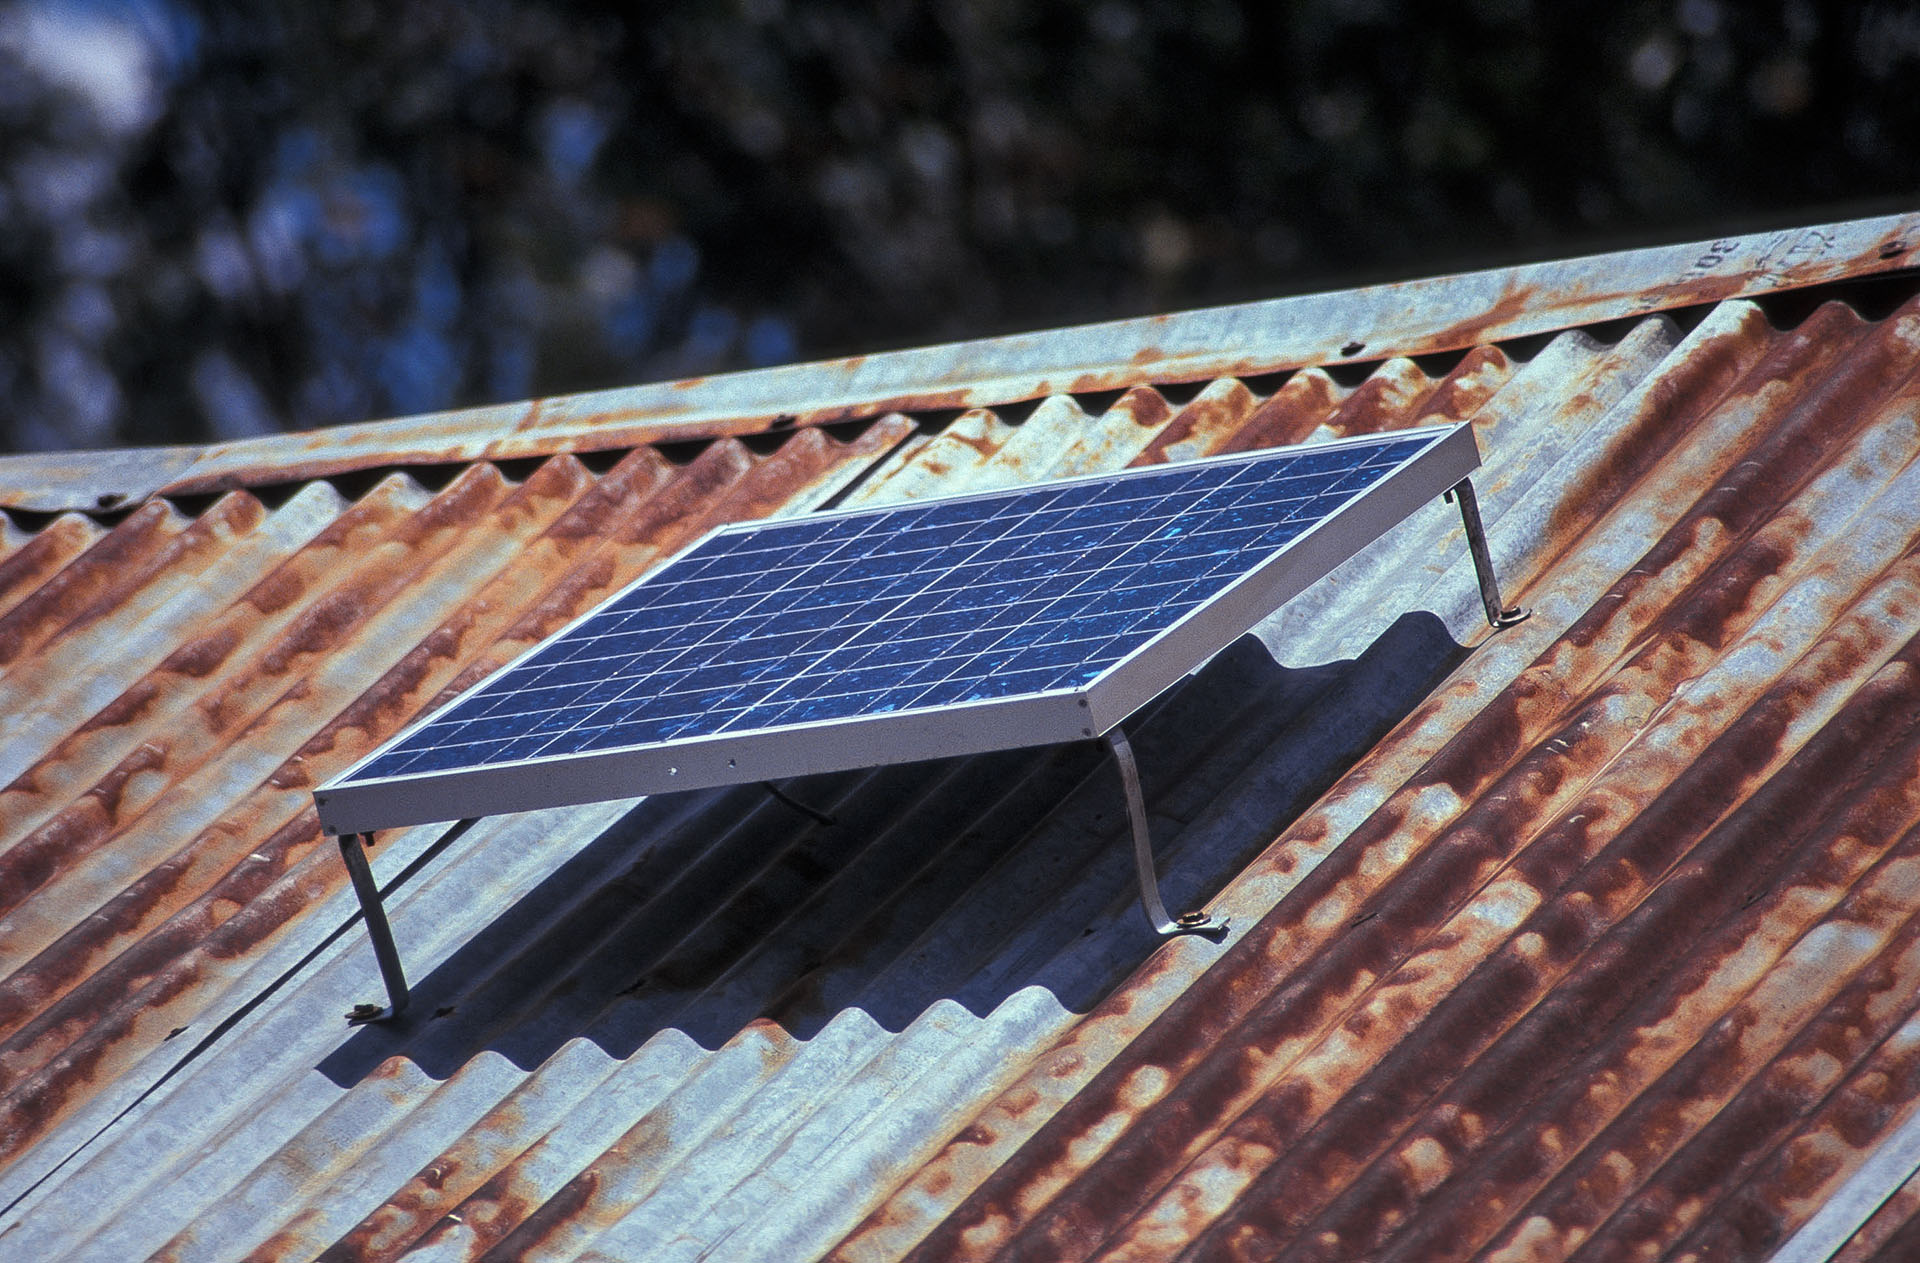 A small roof-mounted solar PV panel, which would could supply lighting, but would not provde sufficient power for cooking